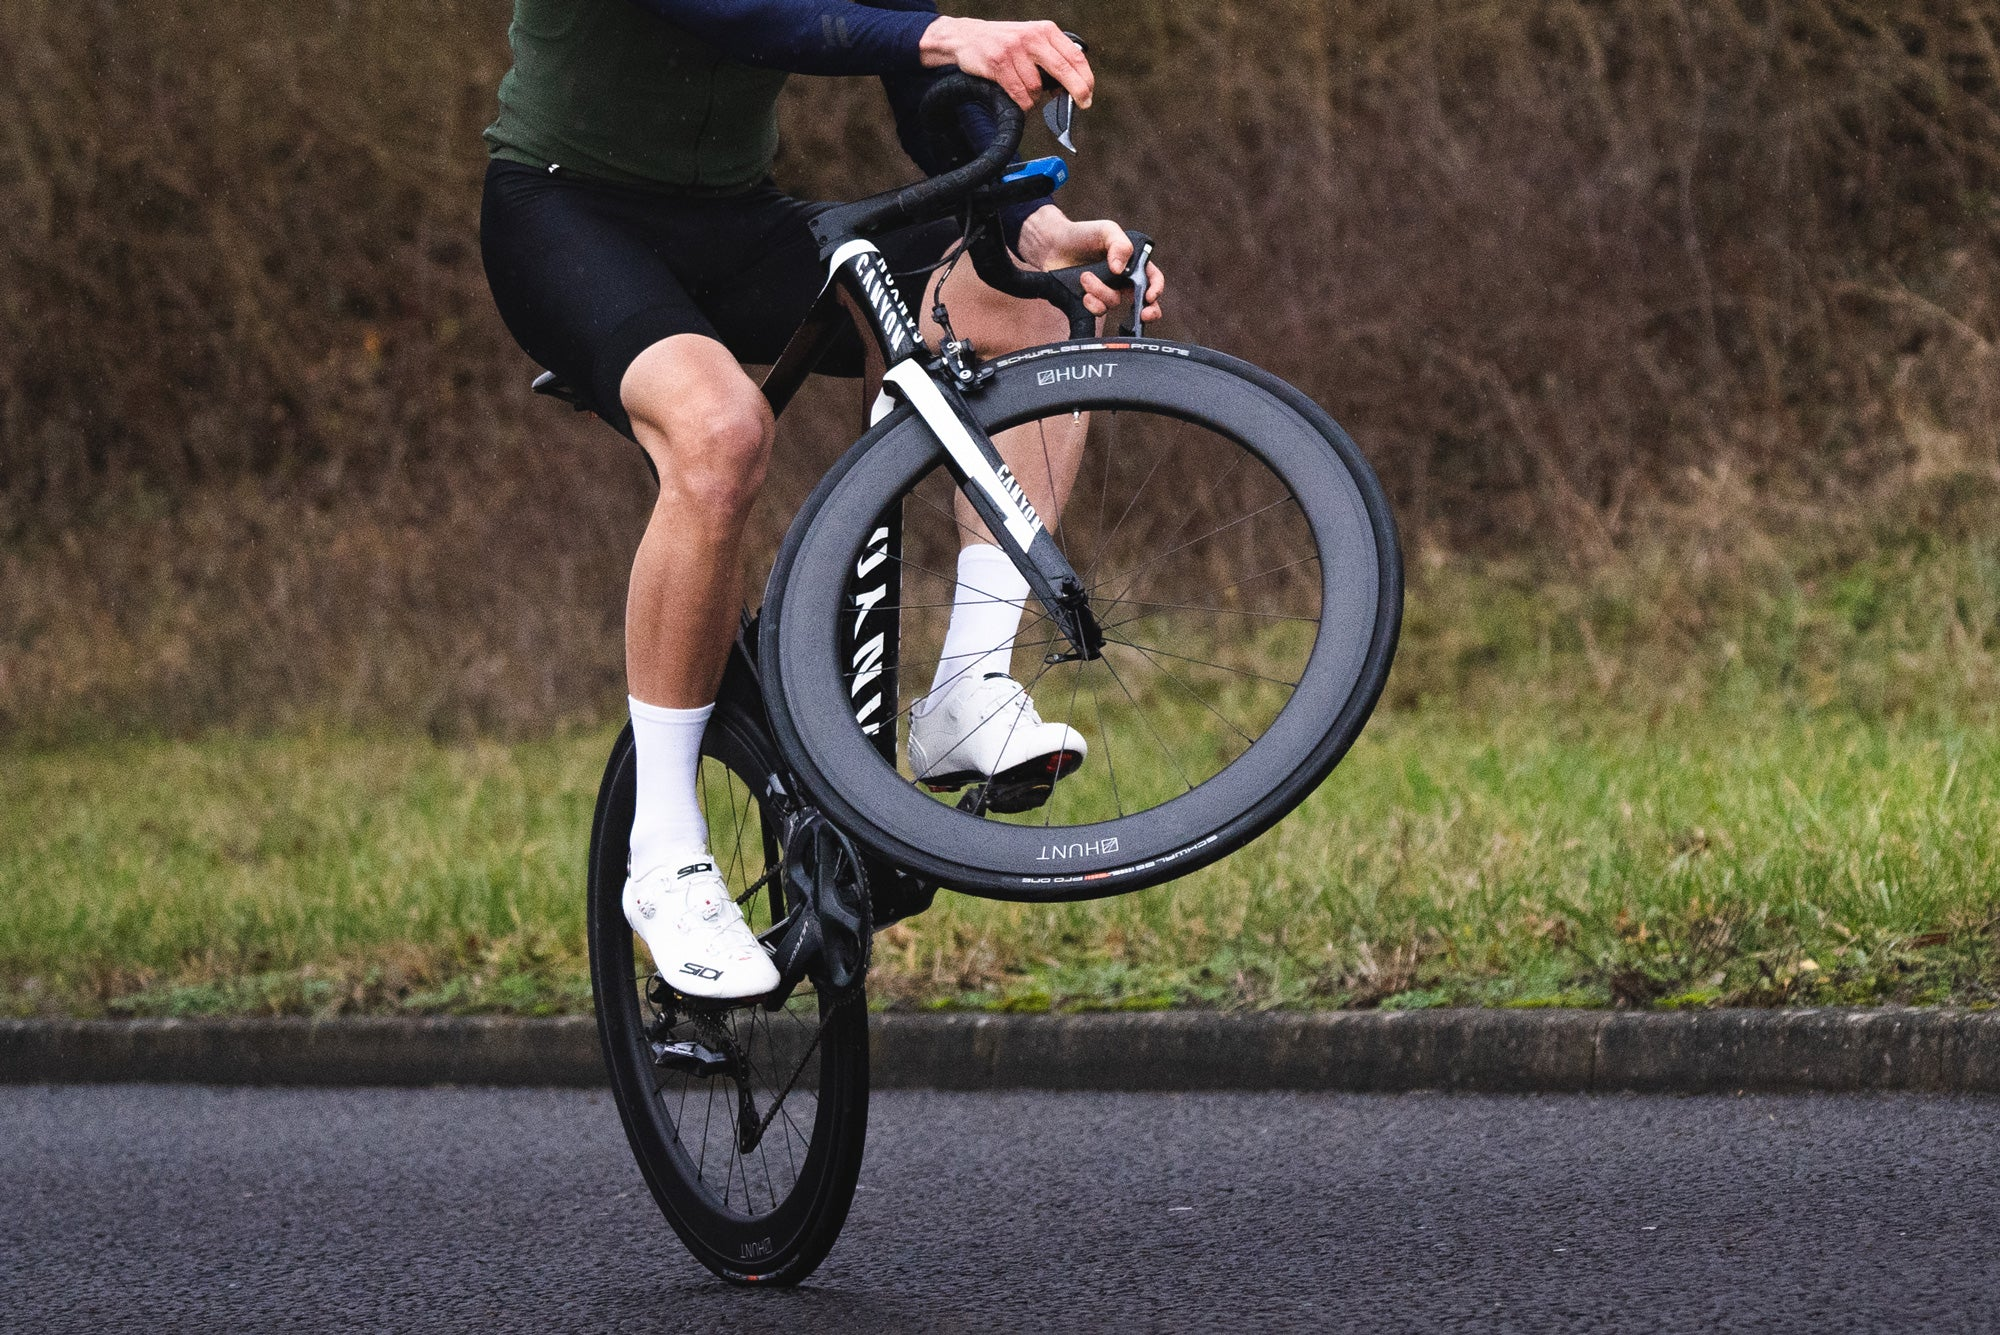 <h1>Weight</h1><i>The consequence of the fanatical attention to detail is an outstandingly light 1575g (62/62) wheelset weight in a lightning fast stiff aero package. We've enjoyed free wheeling in the pack whilst all others are pedalling, is it cheating?</i>